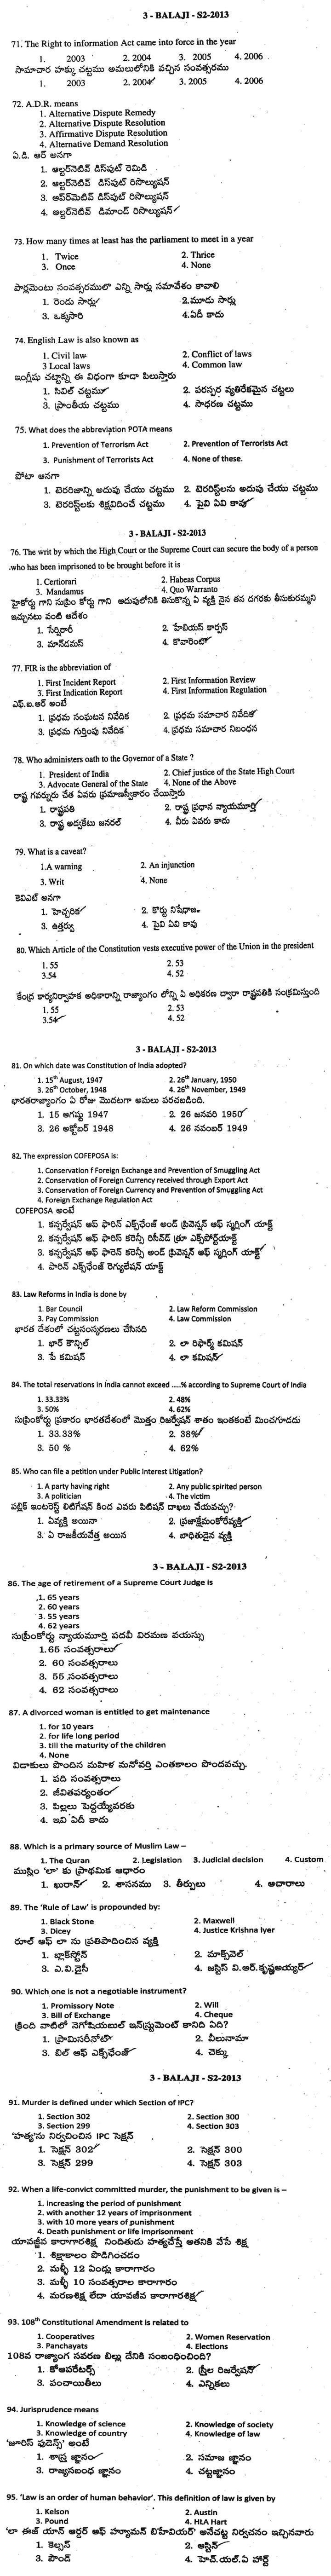 LAWCET 2013 Previous Year Question Paper with Solution